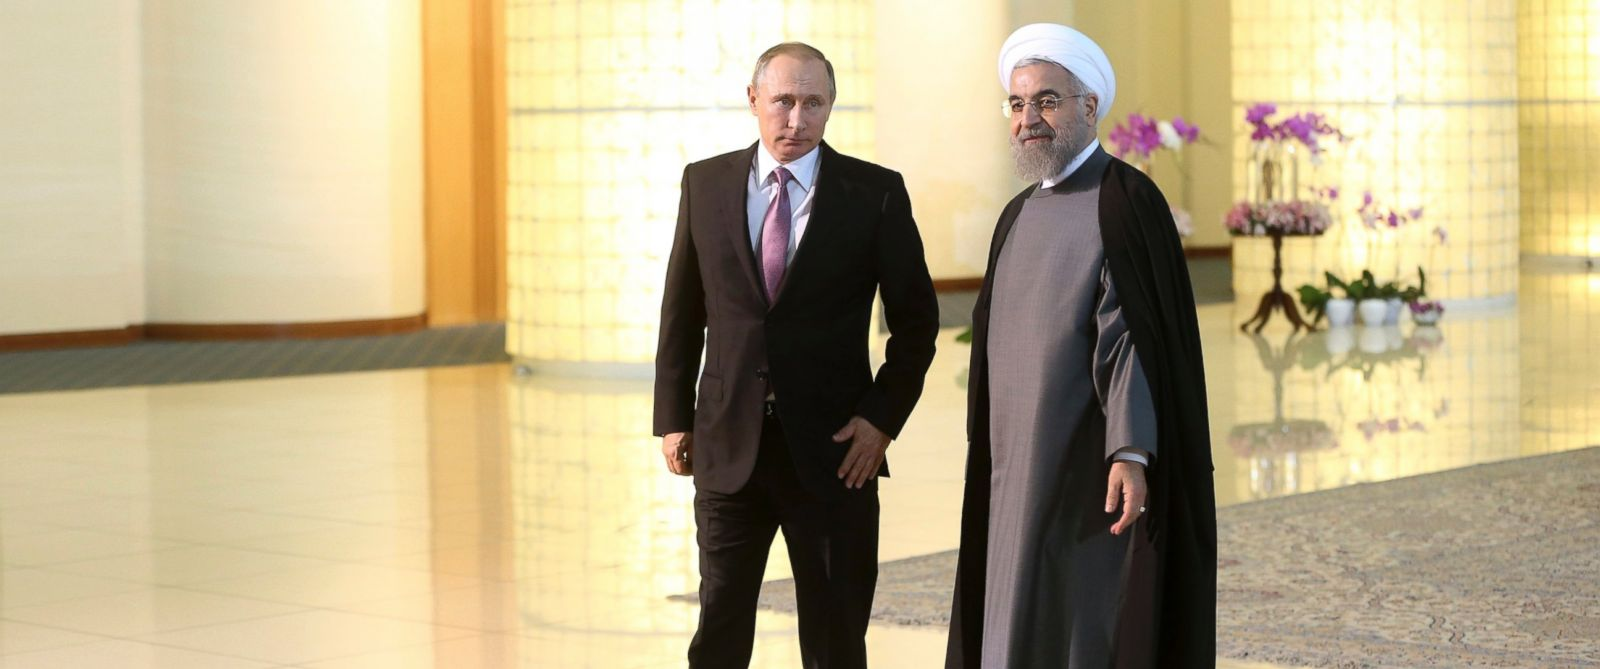 PHOTO: Russian President Vladimir Putin, left, and his Iranian counterpart Hassan Rouhani arrive for the Gas Exporting Countries Forum, GECF, summit meeting in Tehran, Iran, Nov. 23, 2015.